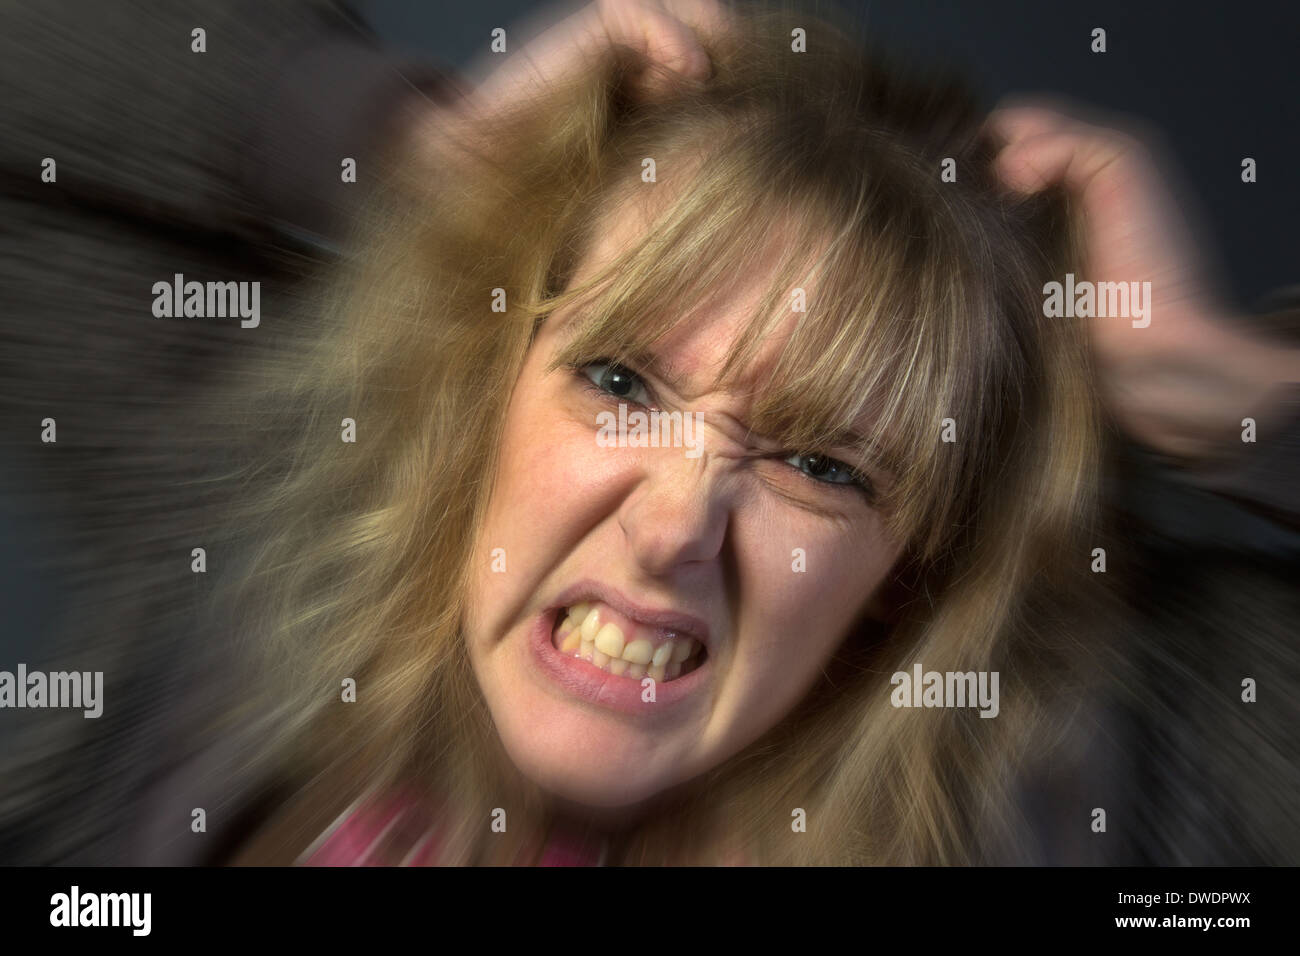 A very angry young woman tearing her hair out. - Stock Image